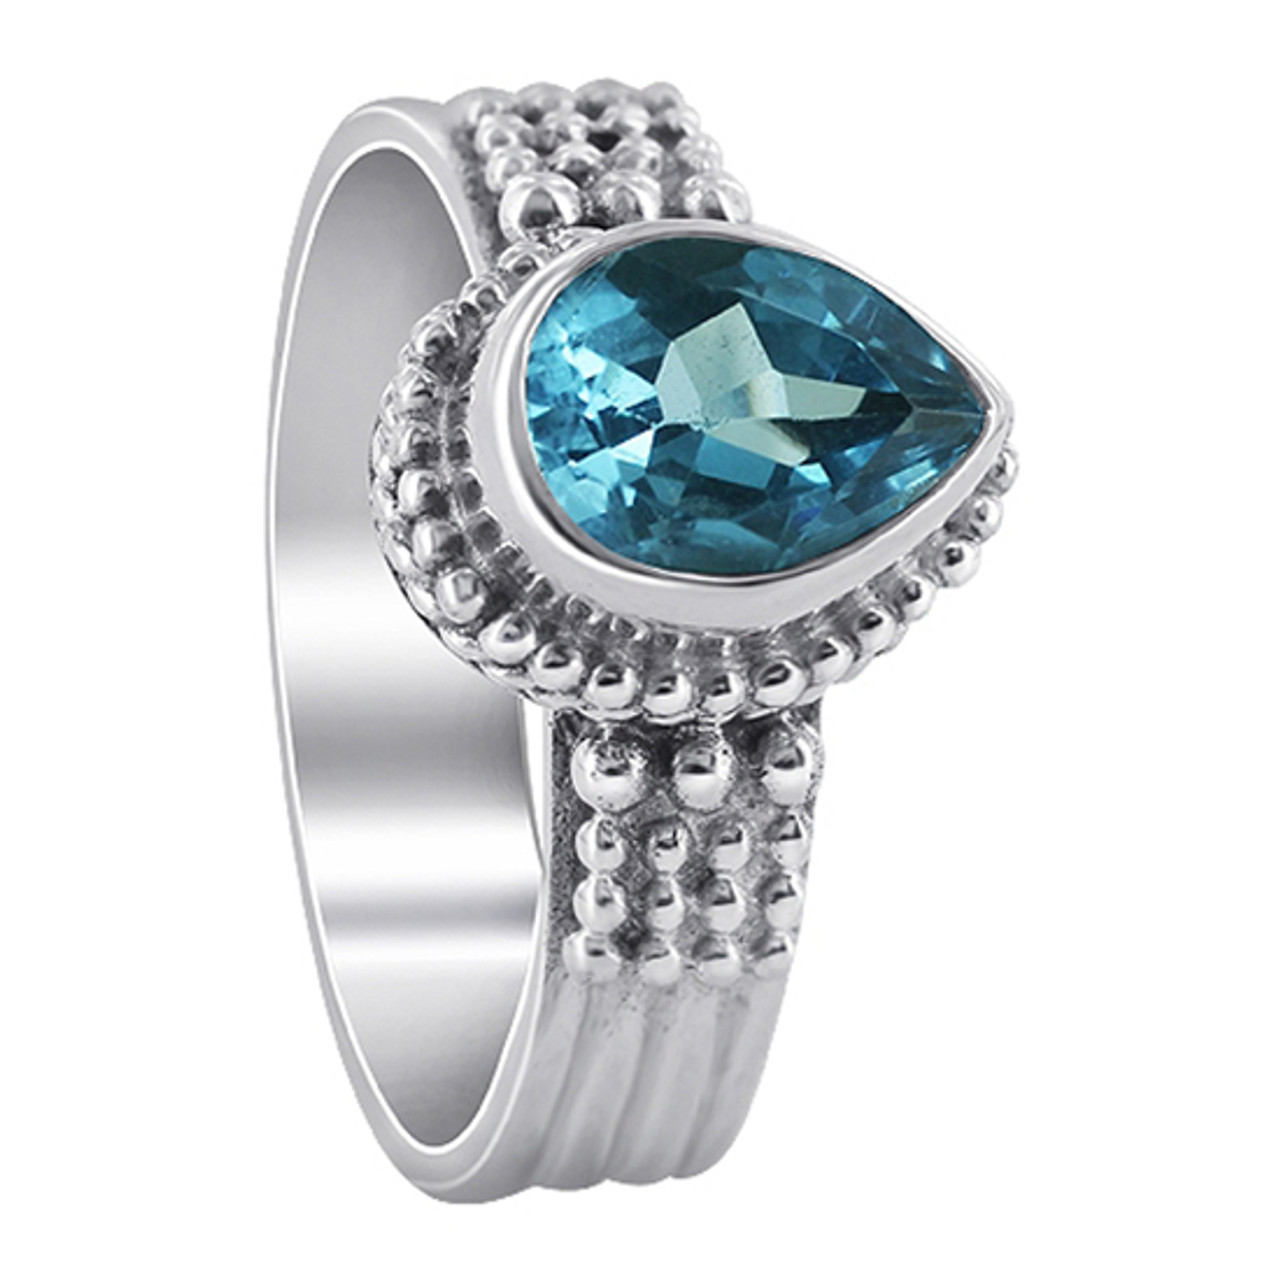 Blue Topaz Solitaire Gemstone 925 Sterling Silver Women's Ring